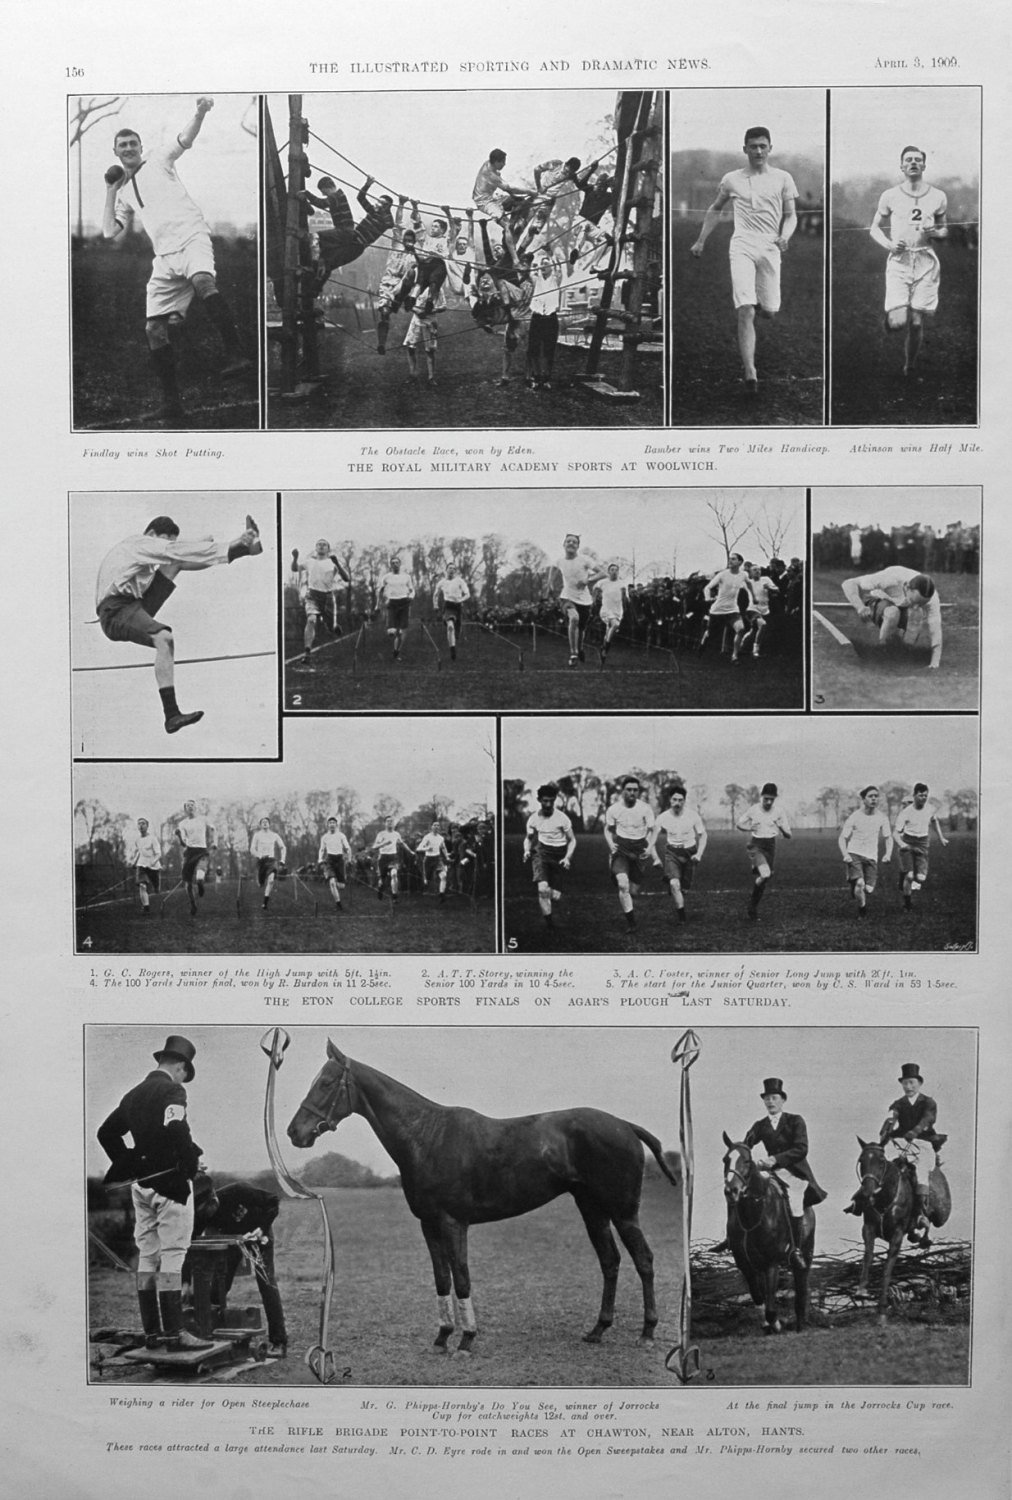 The Eton College Sports Finals on Agar's Plough. 1909.